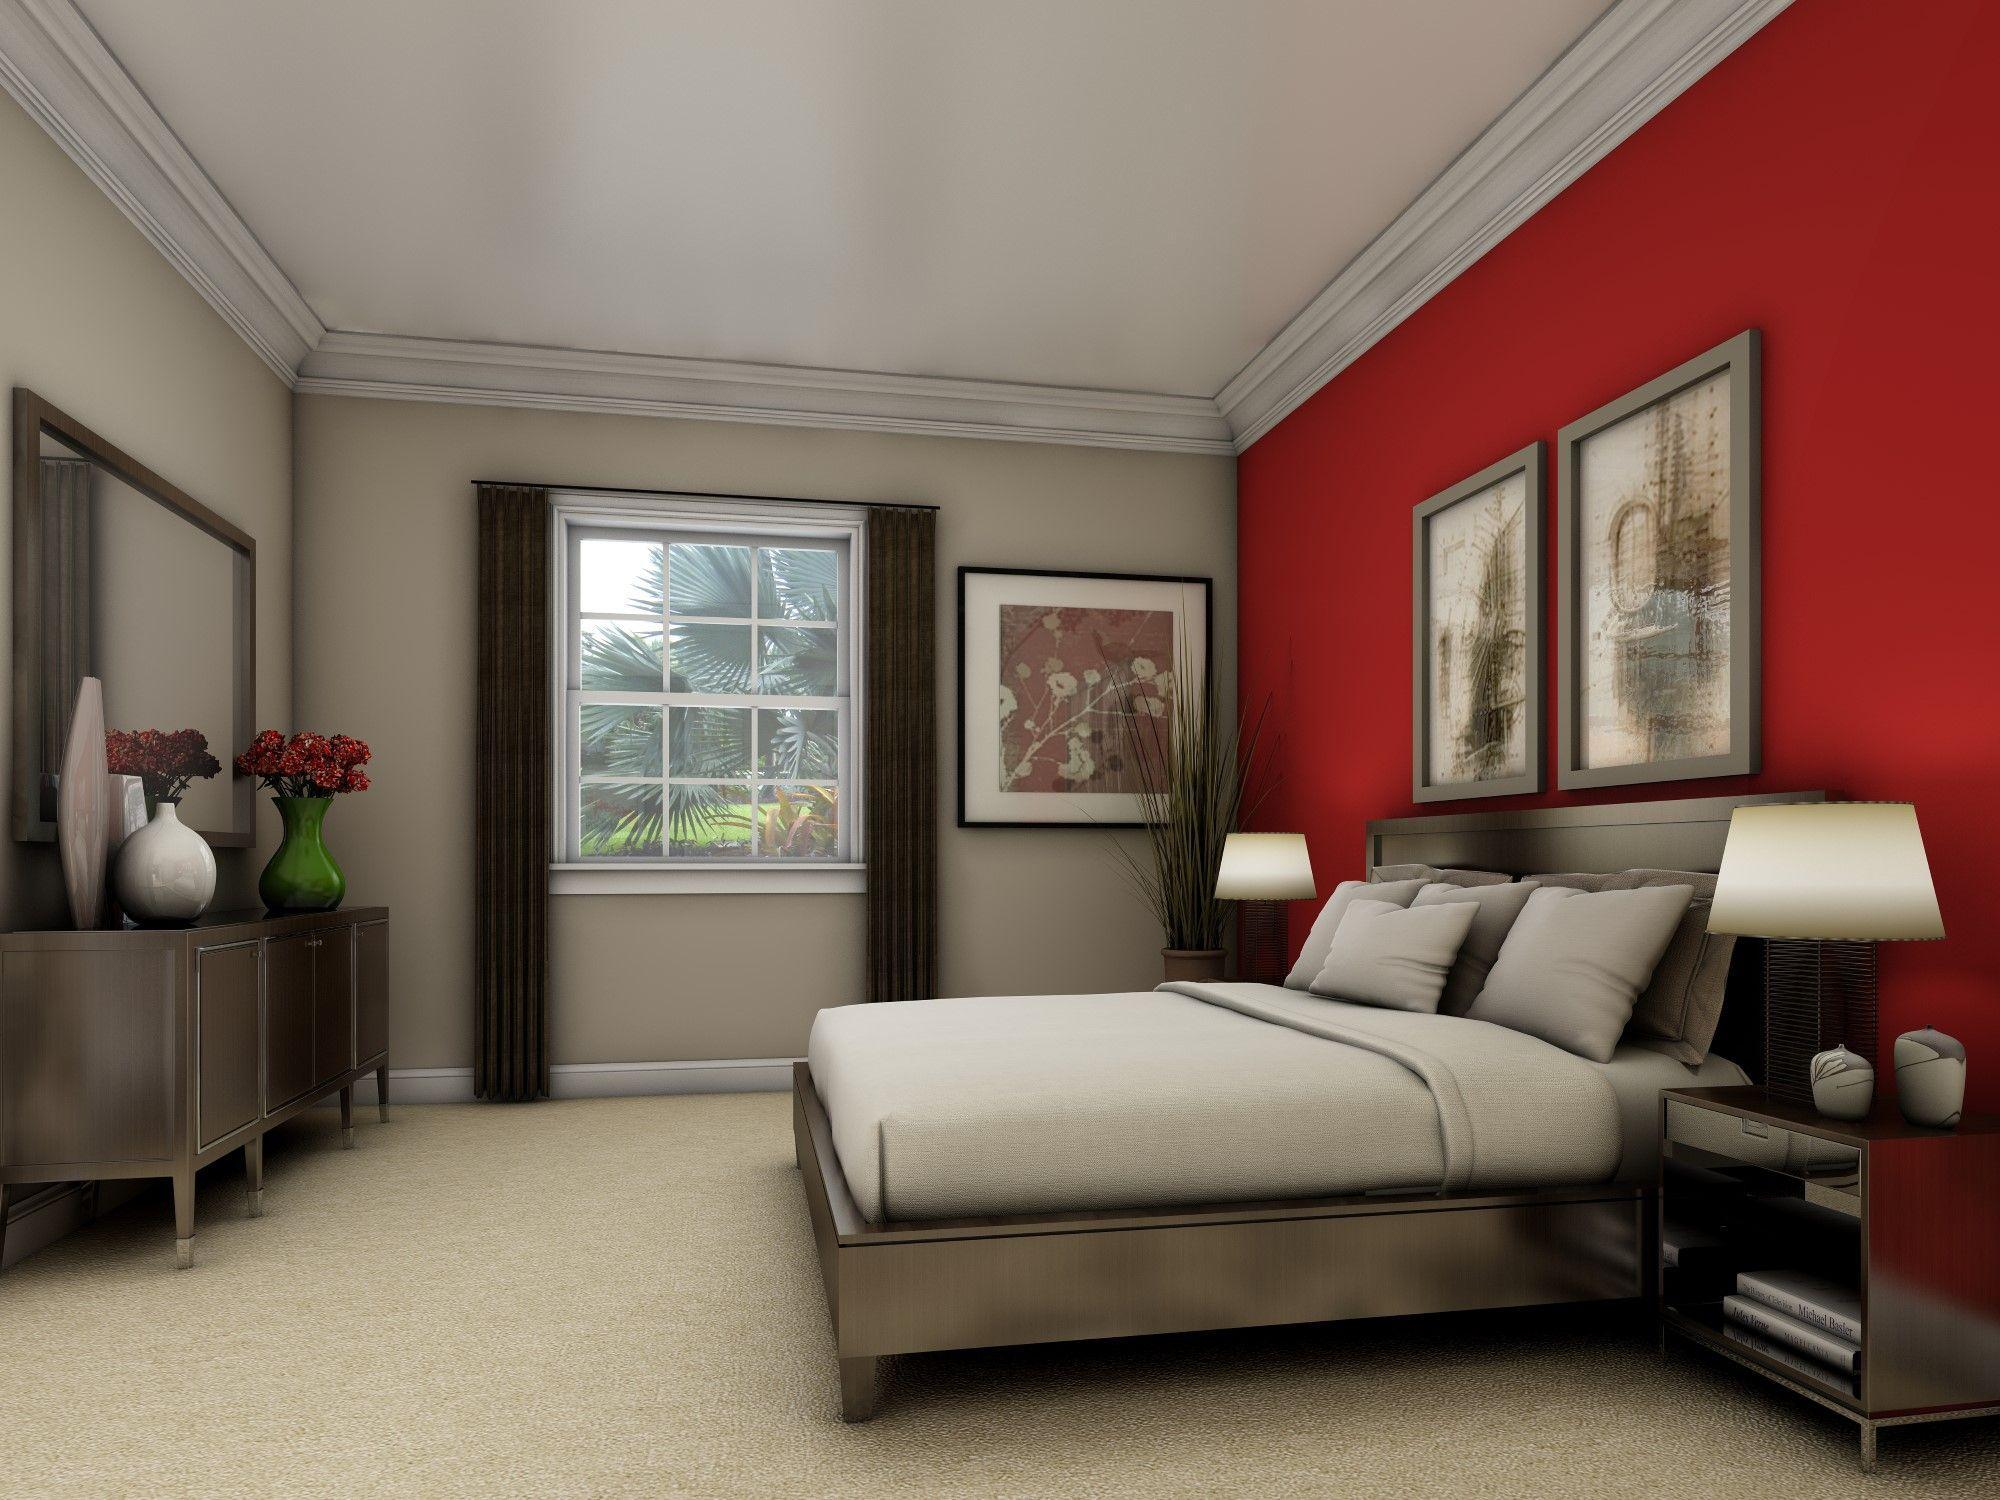 Bedroom featured in the Gambaro By Genova Partners LLC in Fort Myers, FL